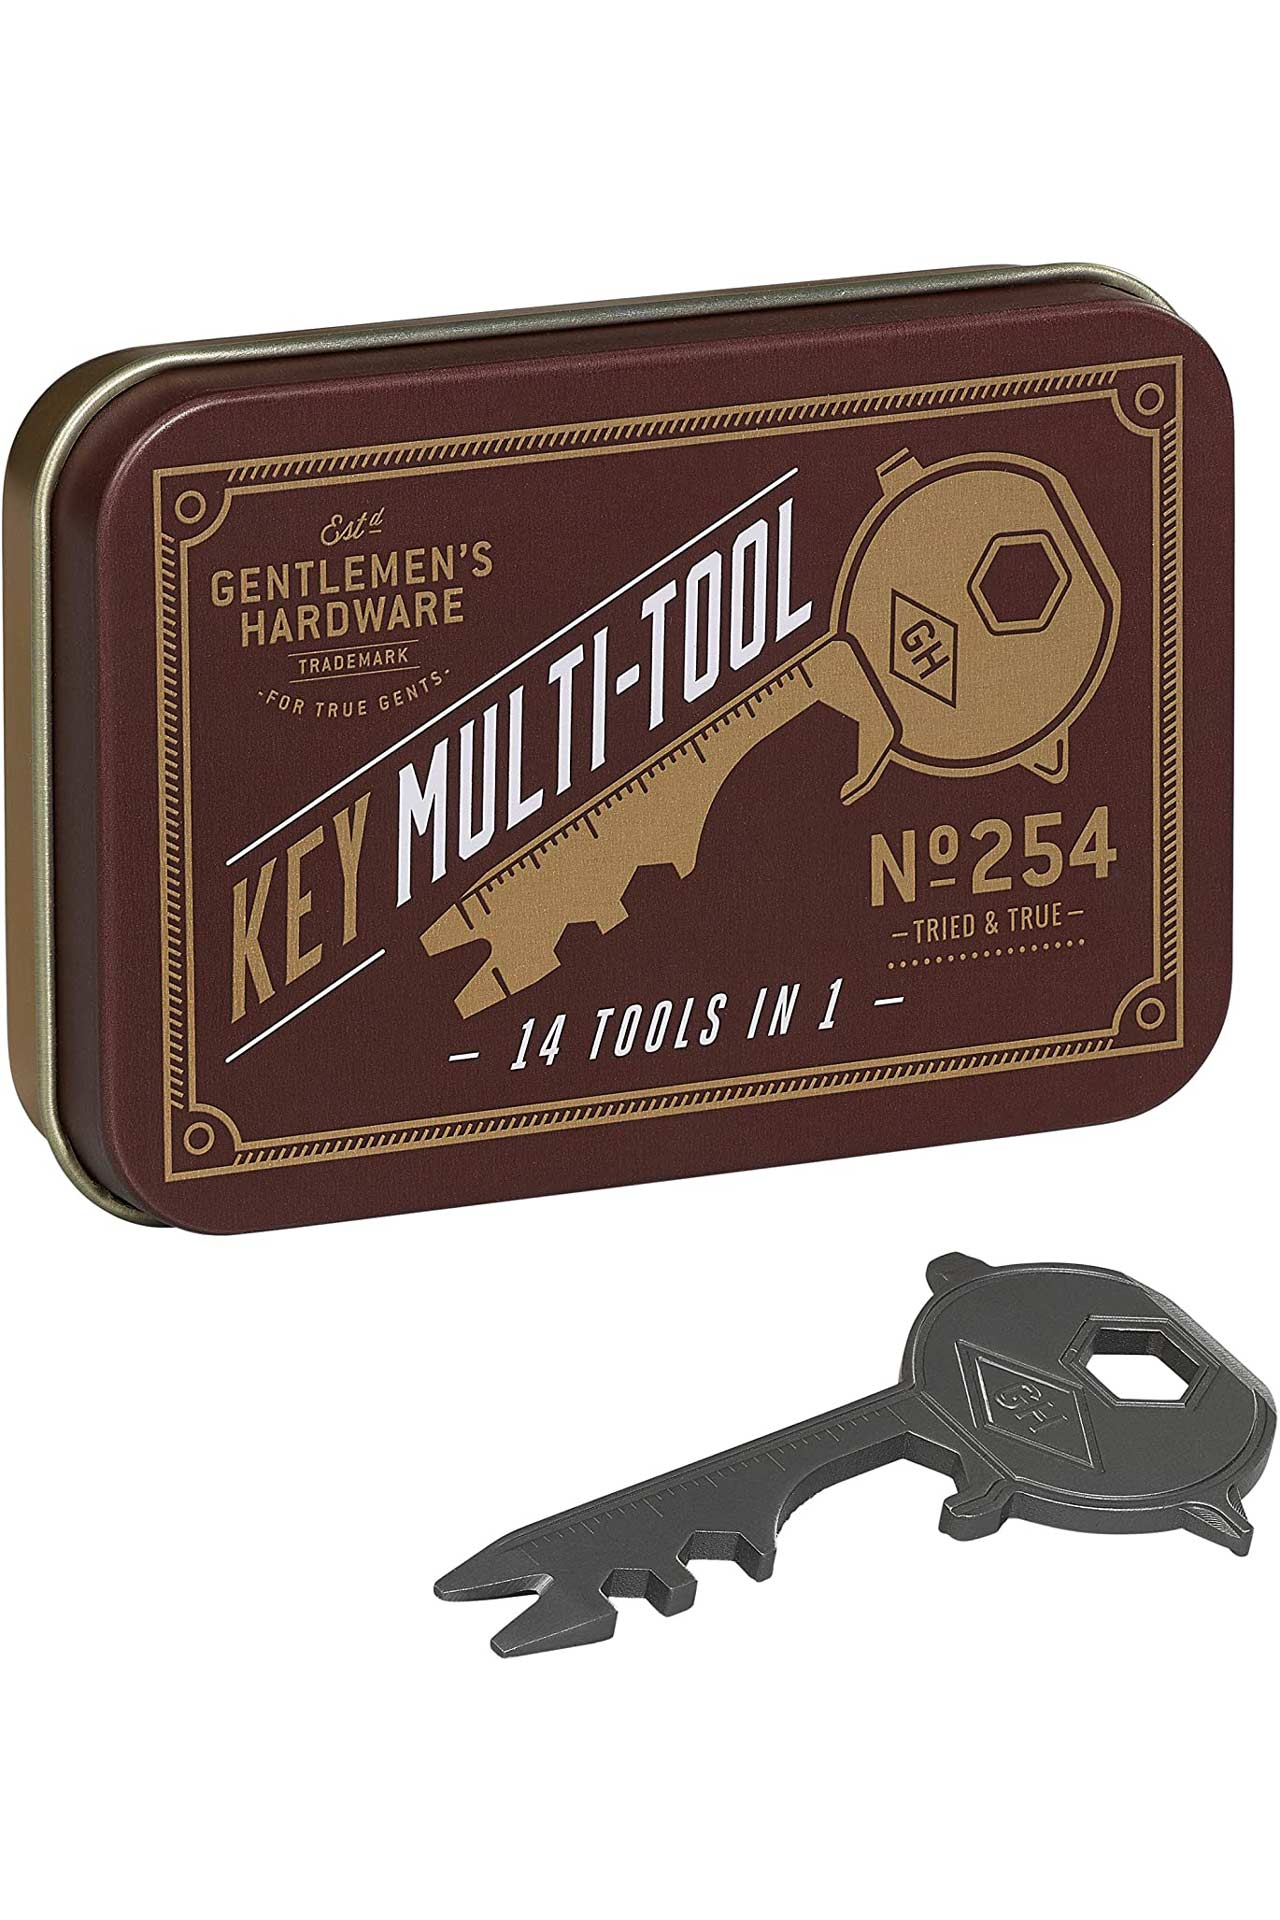 Key Multitool von Gentlemen's Hardware